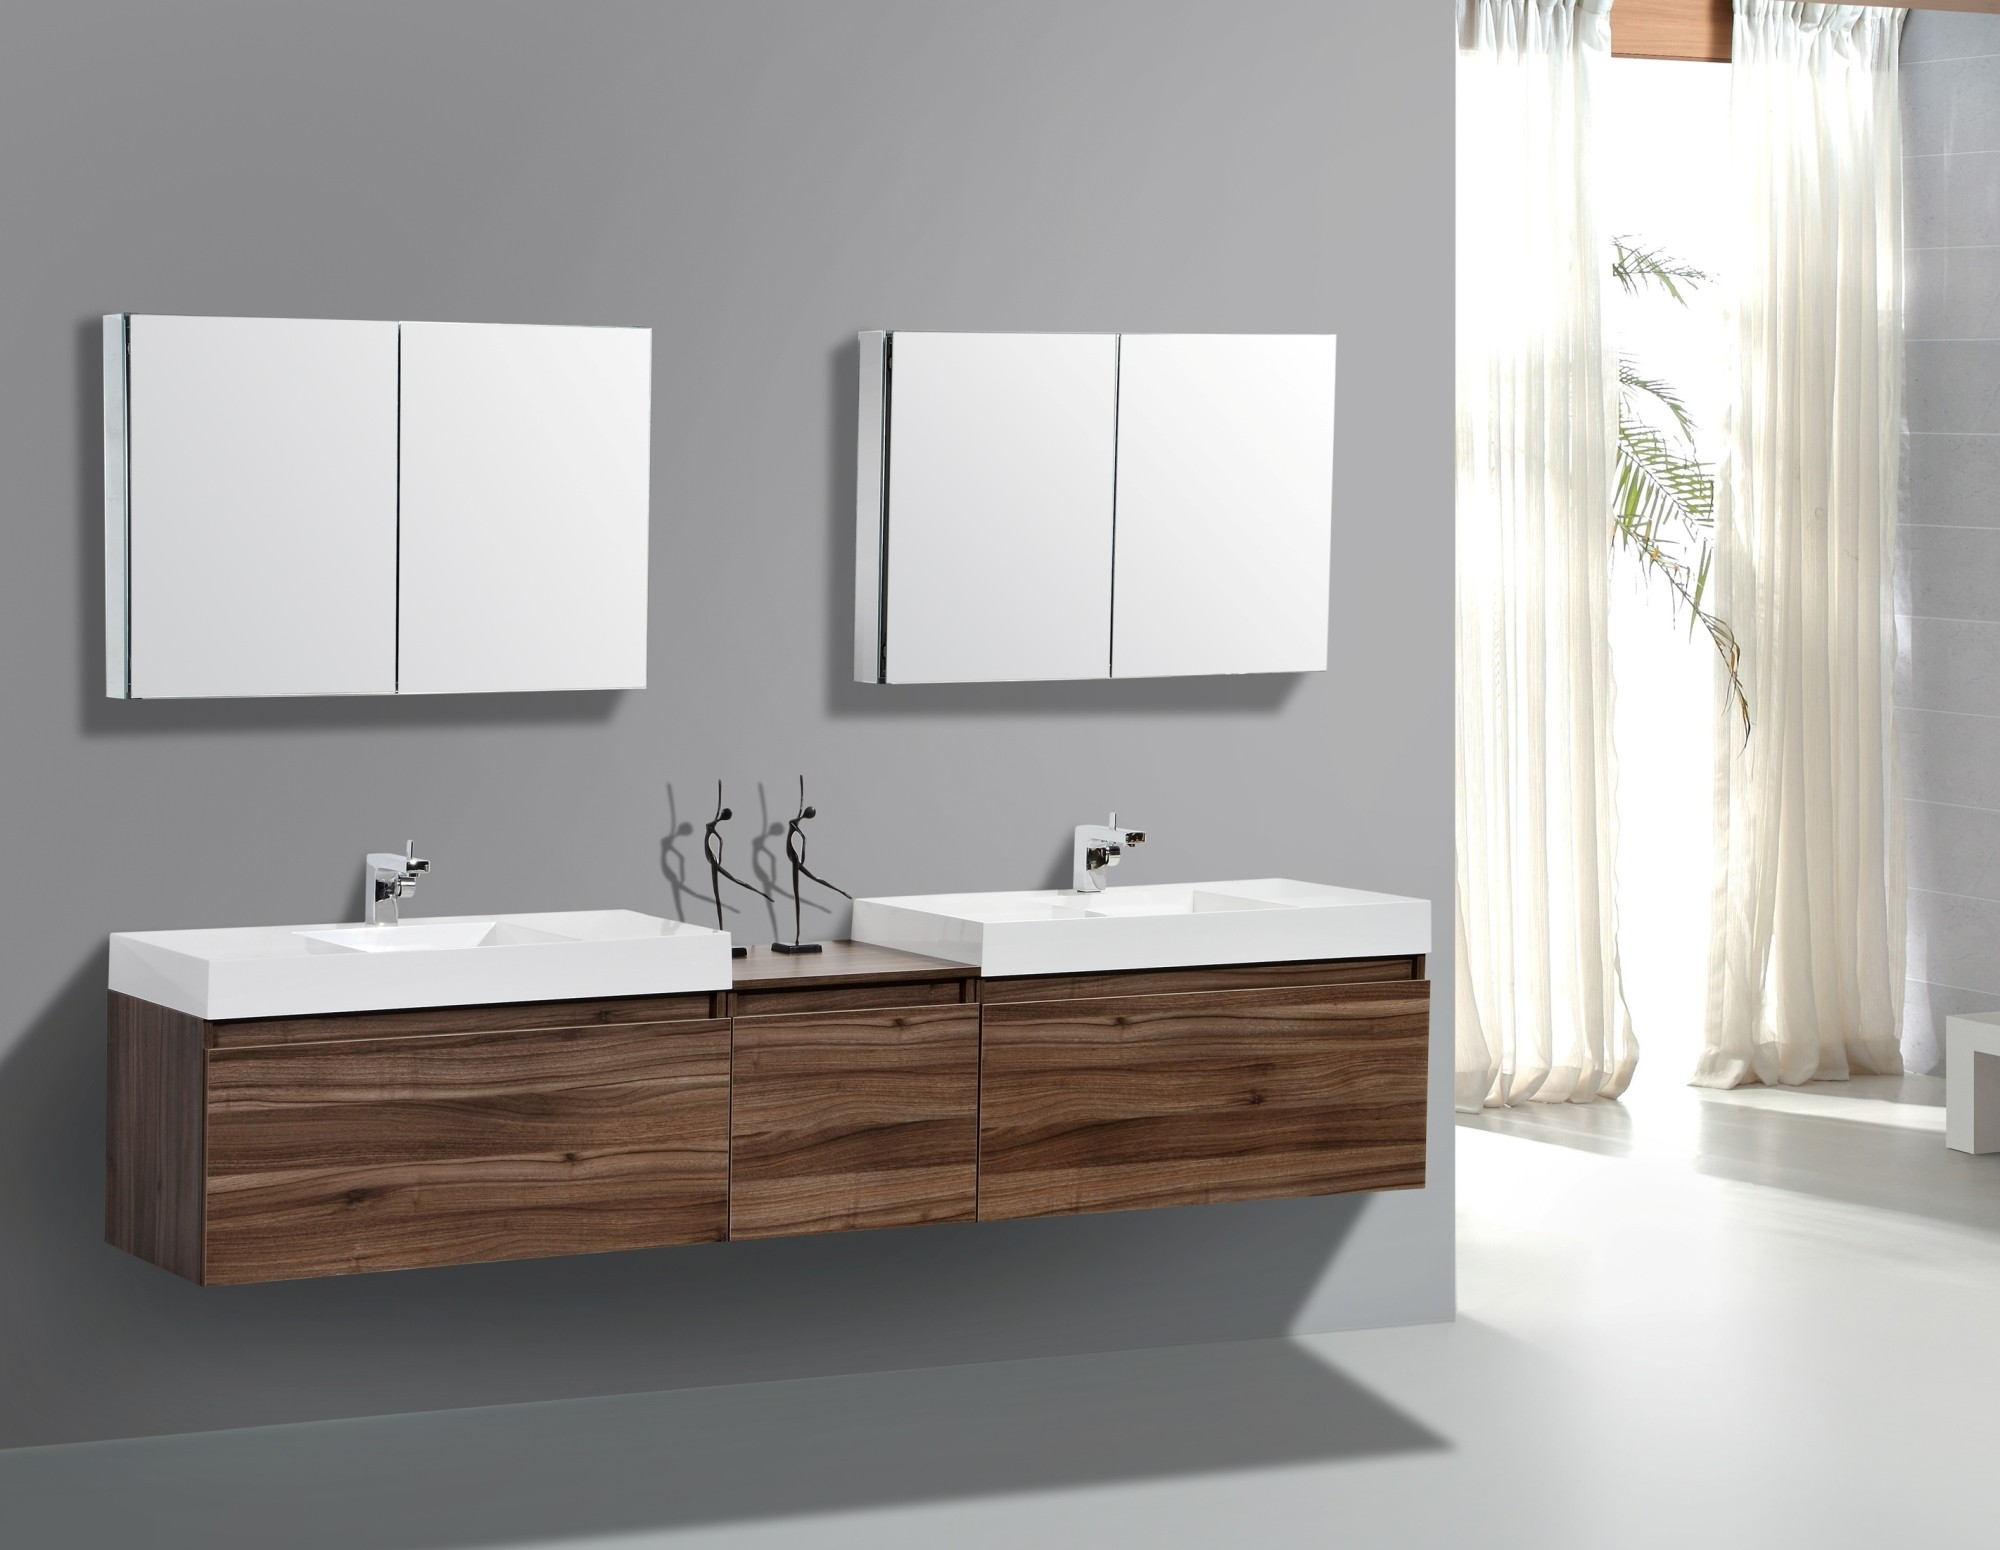 Choosing The Best Modern Bathroom Vanities Vanity Sets - Design bathroom vanity cabinets